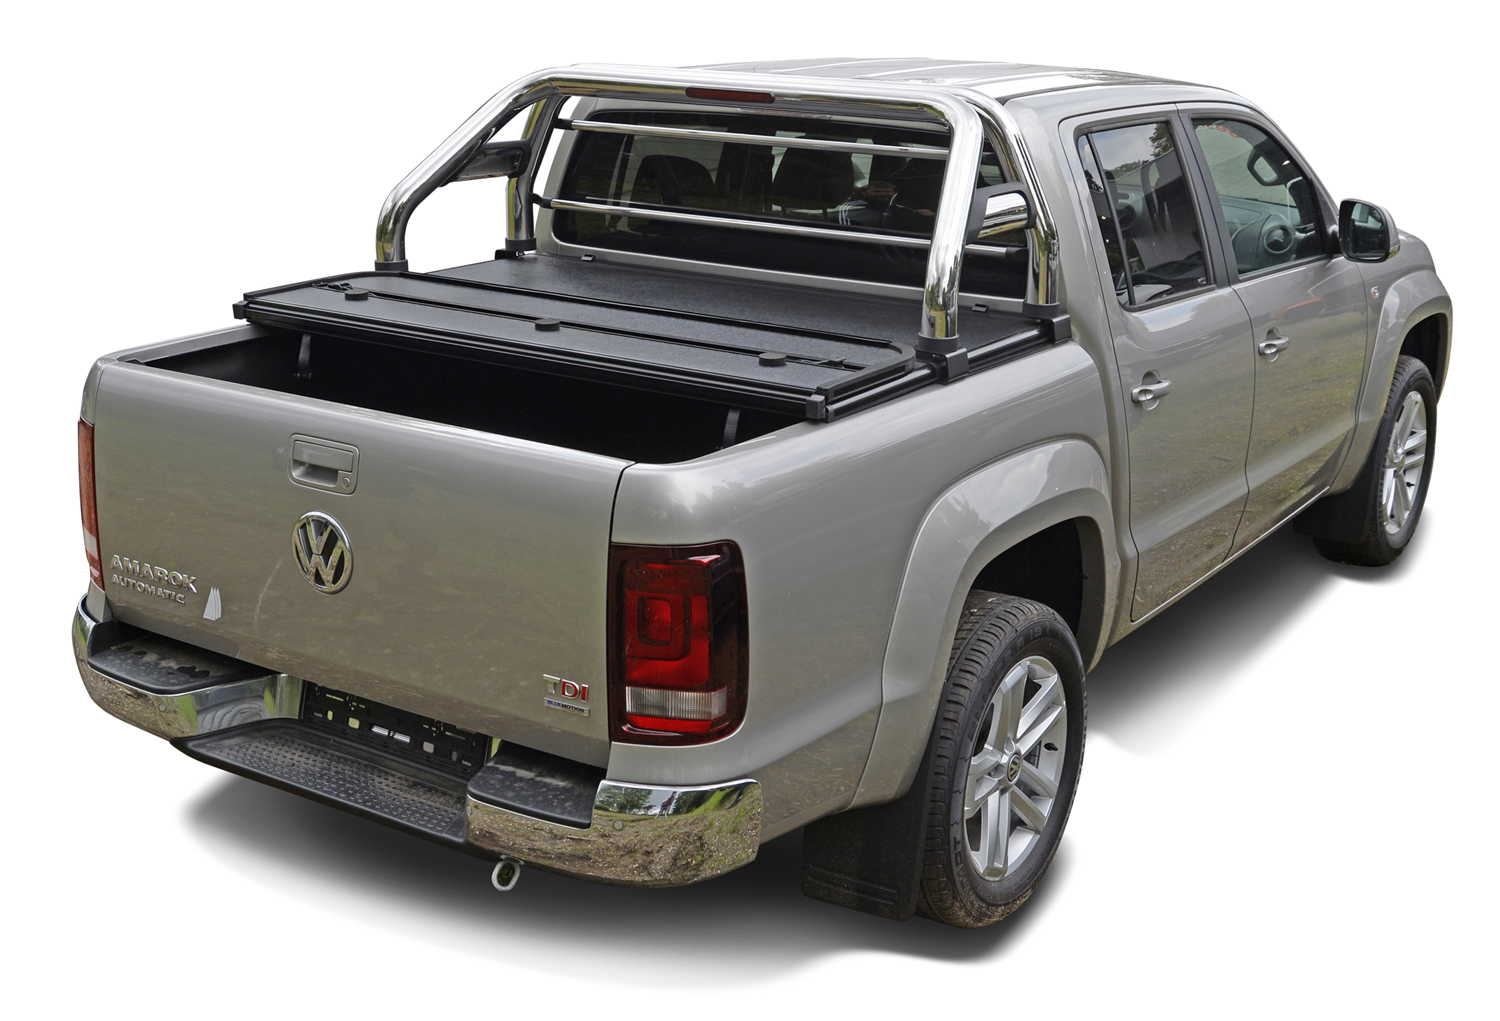 laderaumabdeckung vw amarok 2010 hardtop klappbar cover. Black Bedroom Furniture Sets. Home Design Ideas